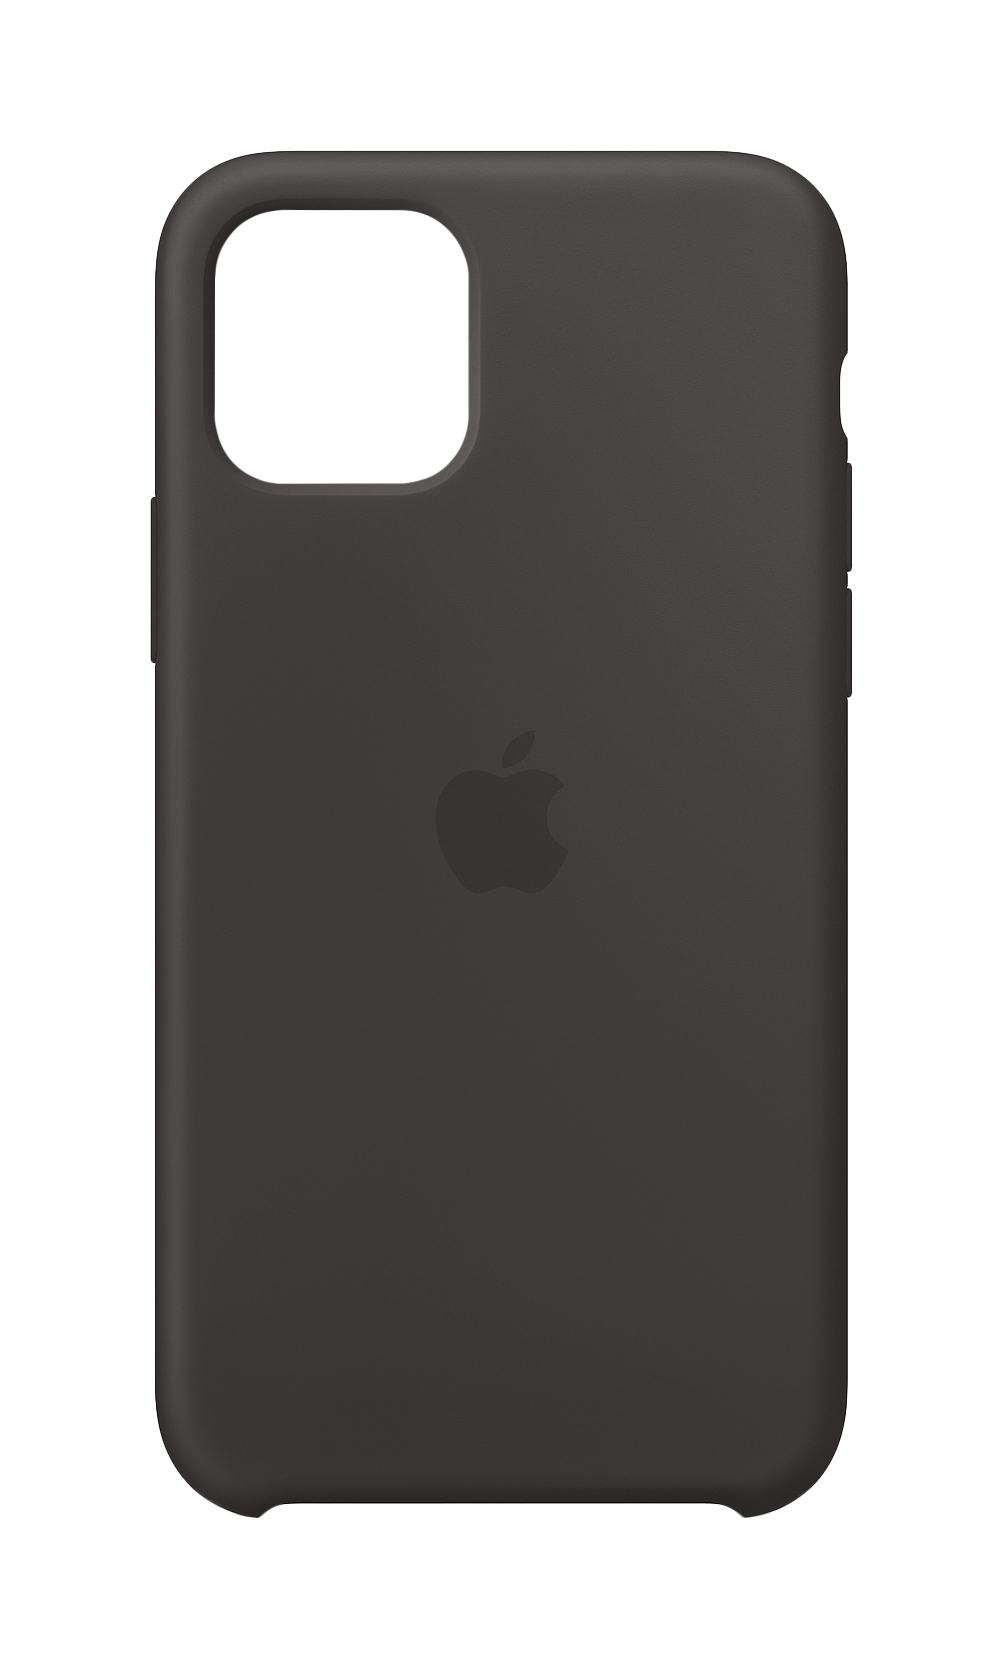 "Apple MWYN2ZM/A mobile phone case 14.7 cm (5.8"") Cover Black"